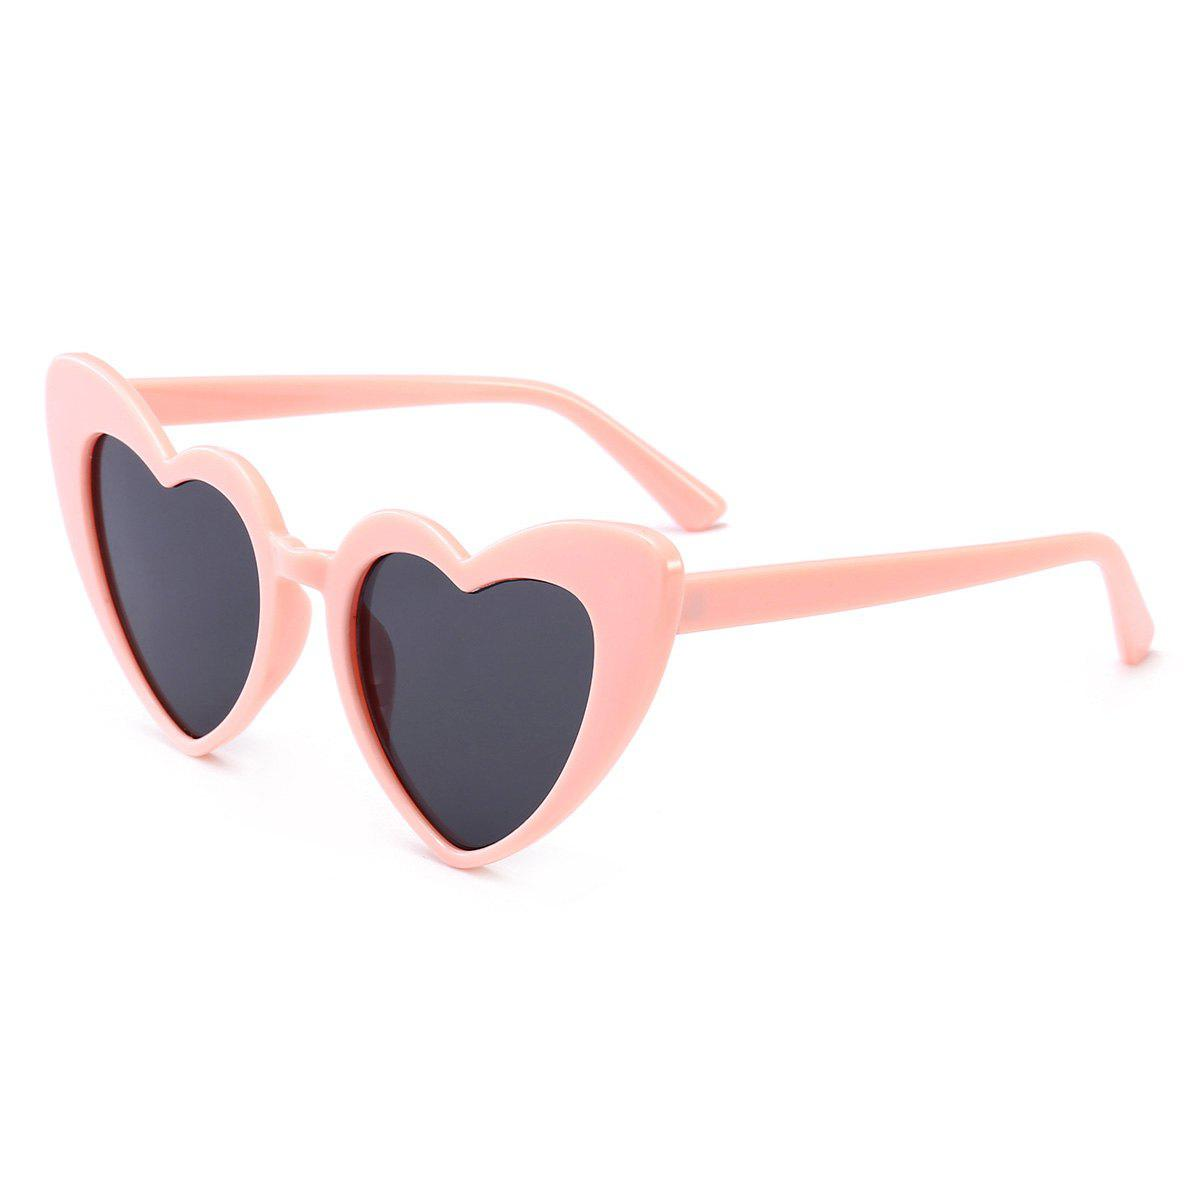 Trendy Full Frame Heart Shape Sunglasses